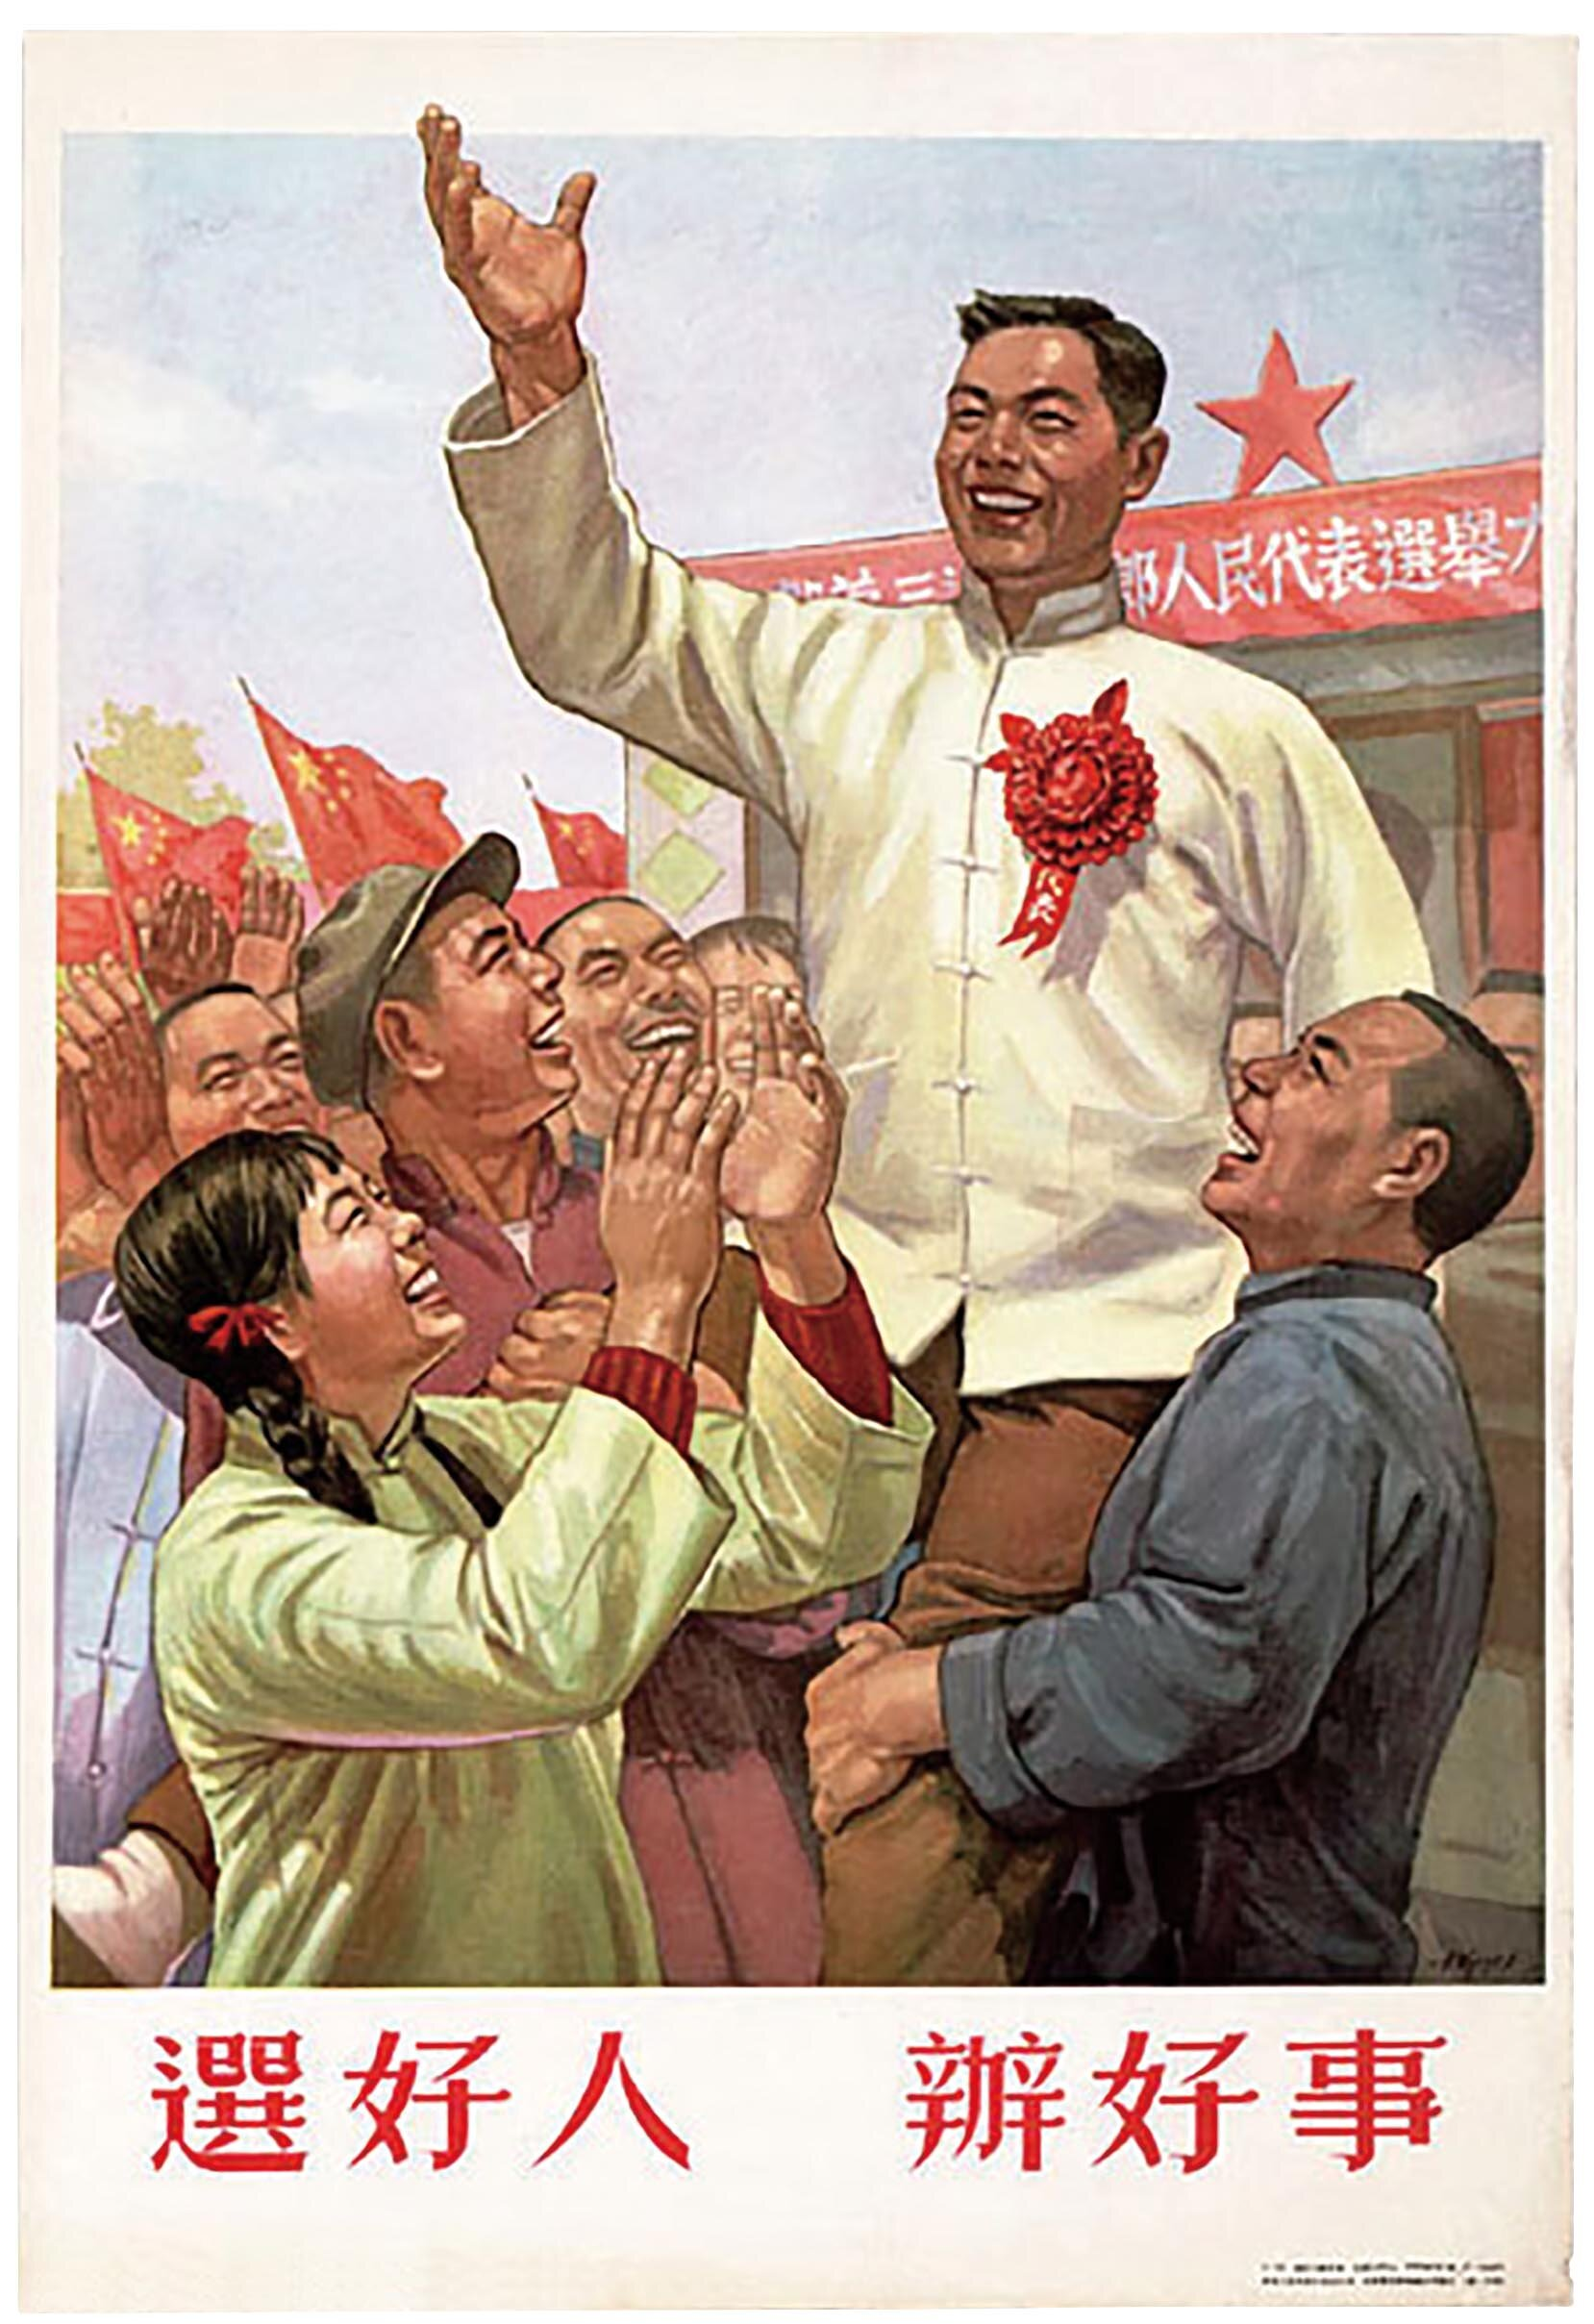 選好人辦好事/Elect good people to do good things, 1953